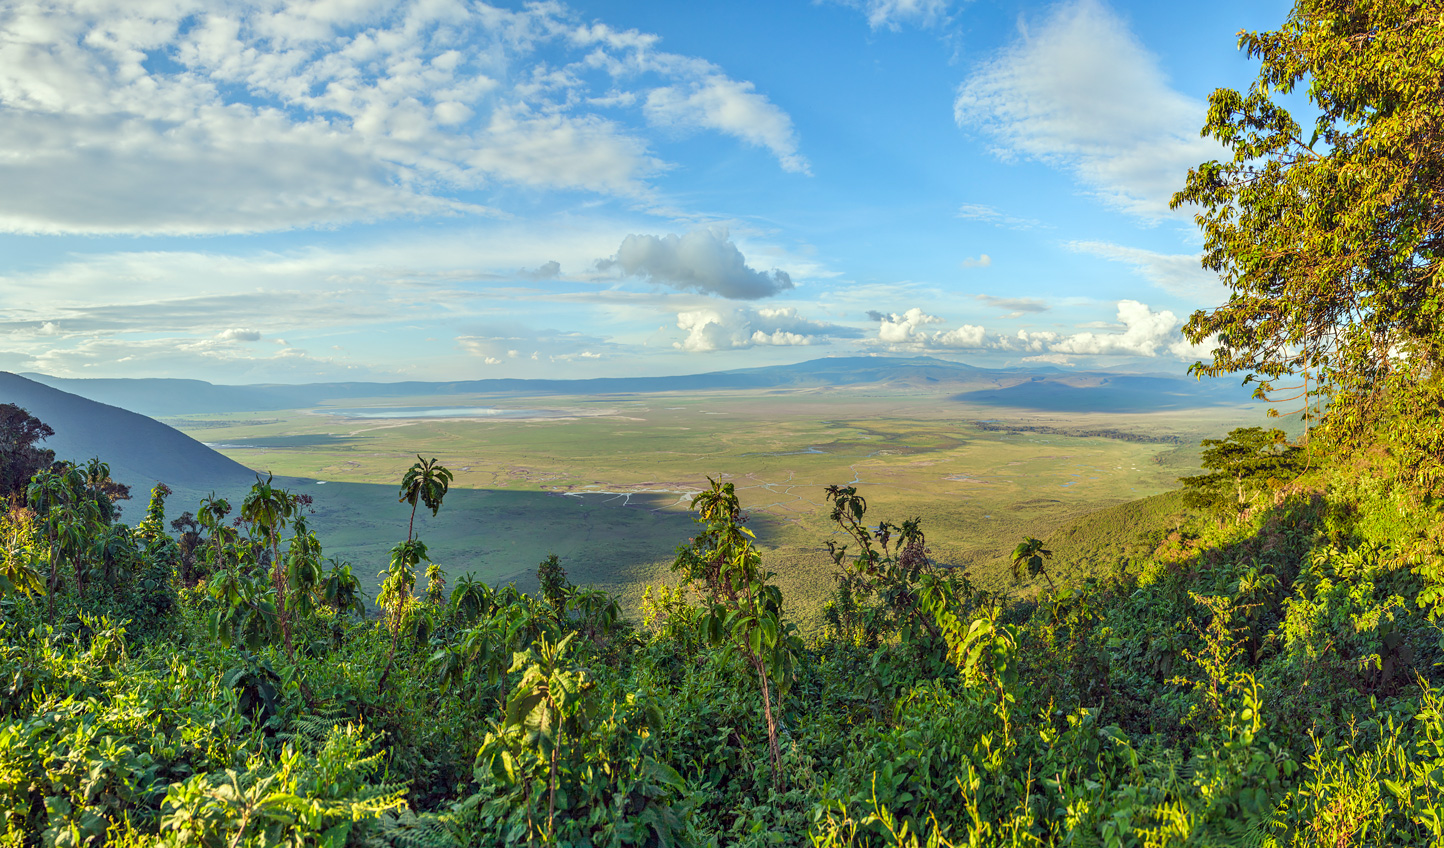 Admire the sweeping vistas from up top before heading down into the Crater